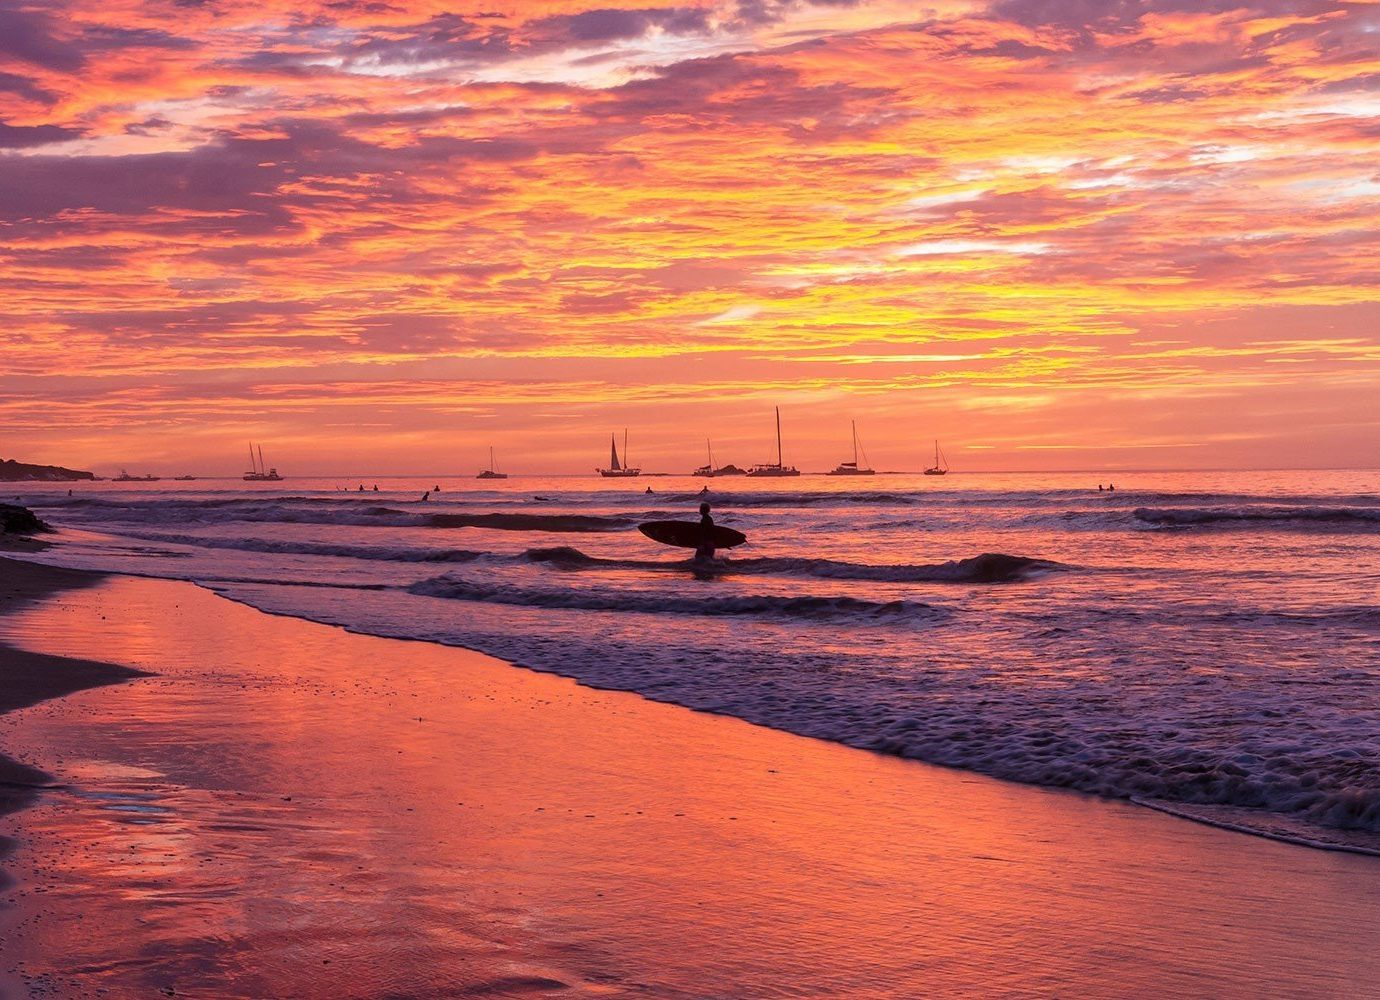 Trip Ideas water outdoor Sunset sky shore Sea sunrise Sun Beach afterglow horizon body of water Ocean dawn Coast cloud pier scene dusk wave evening morning reflection wind wave Nature setting sand